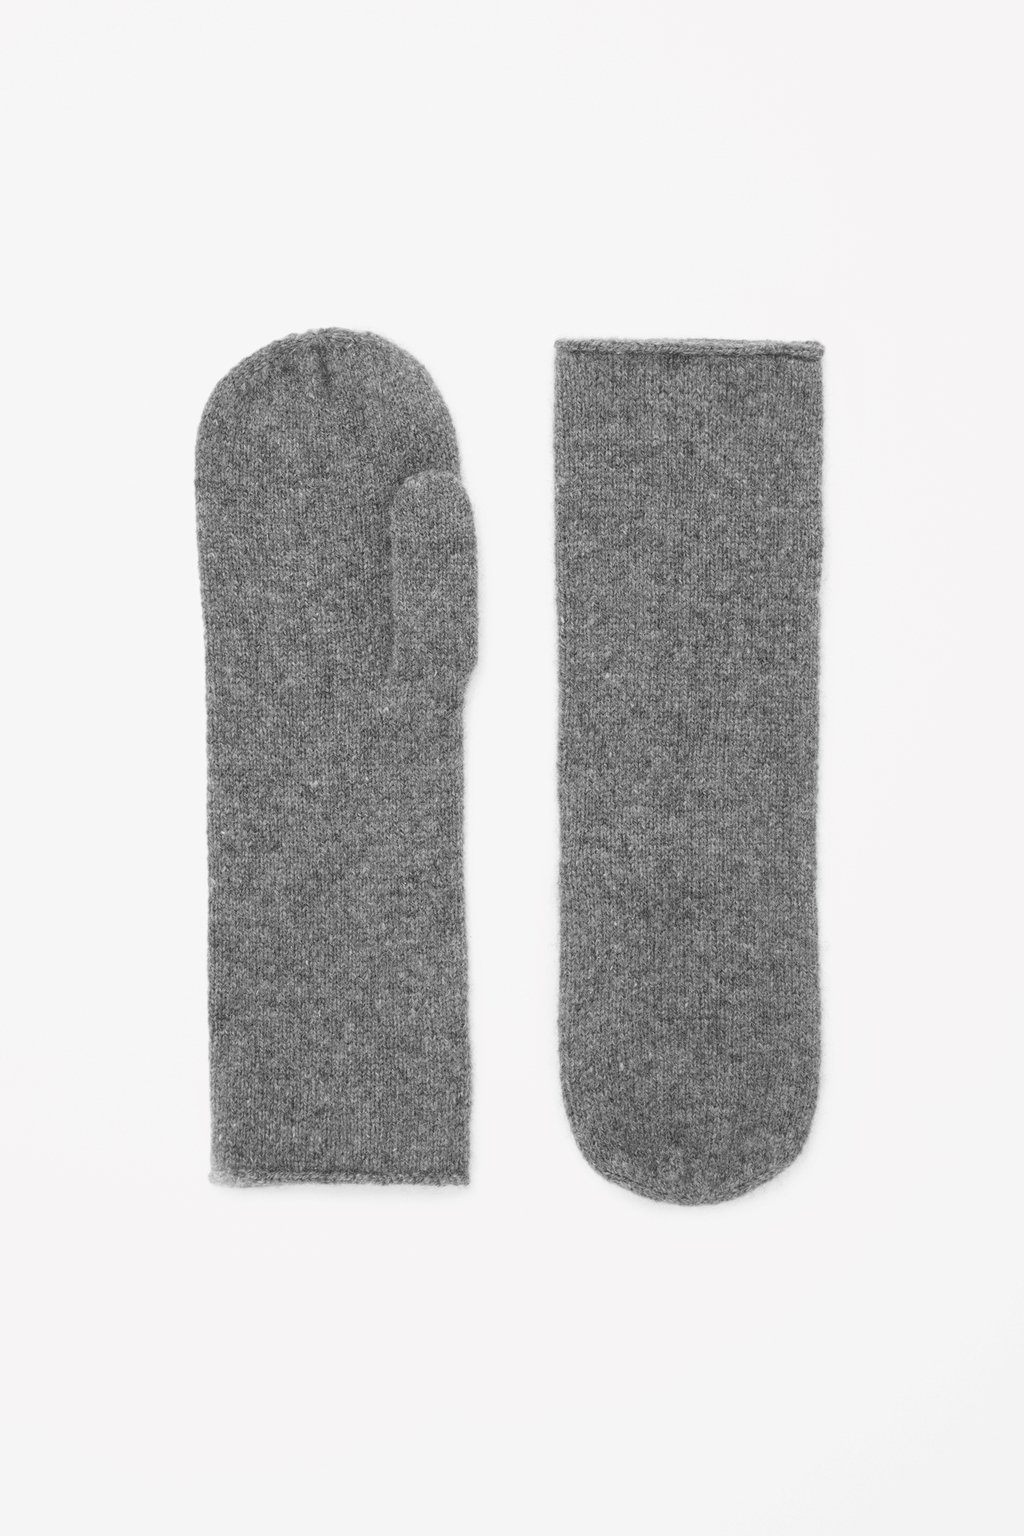 Cashmere Mittens - predominant colour: charcoal; occasions: casual, creative work; style: mittens; length: wrist; material: knits; pattern: plain; season: a/w 2014